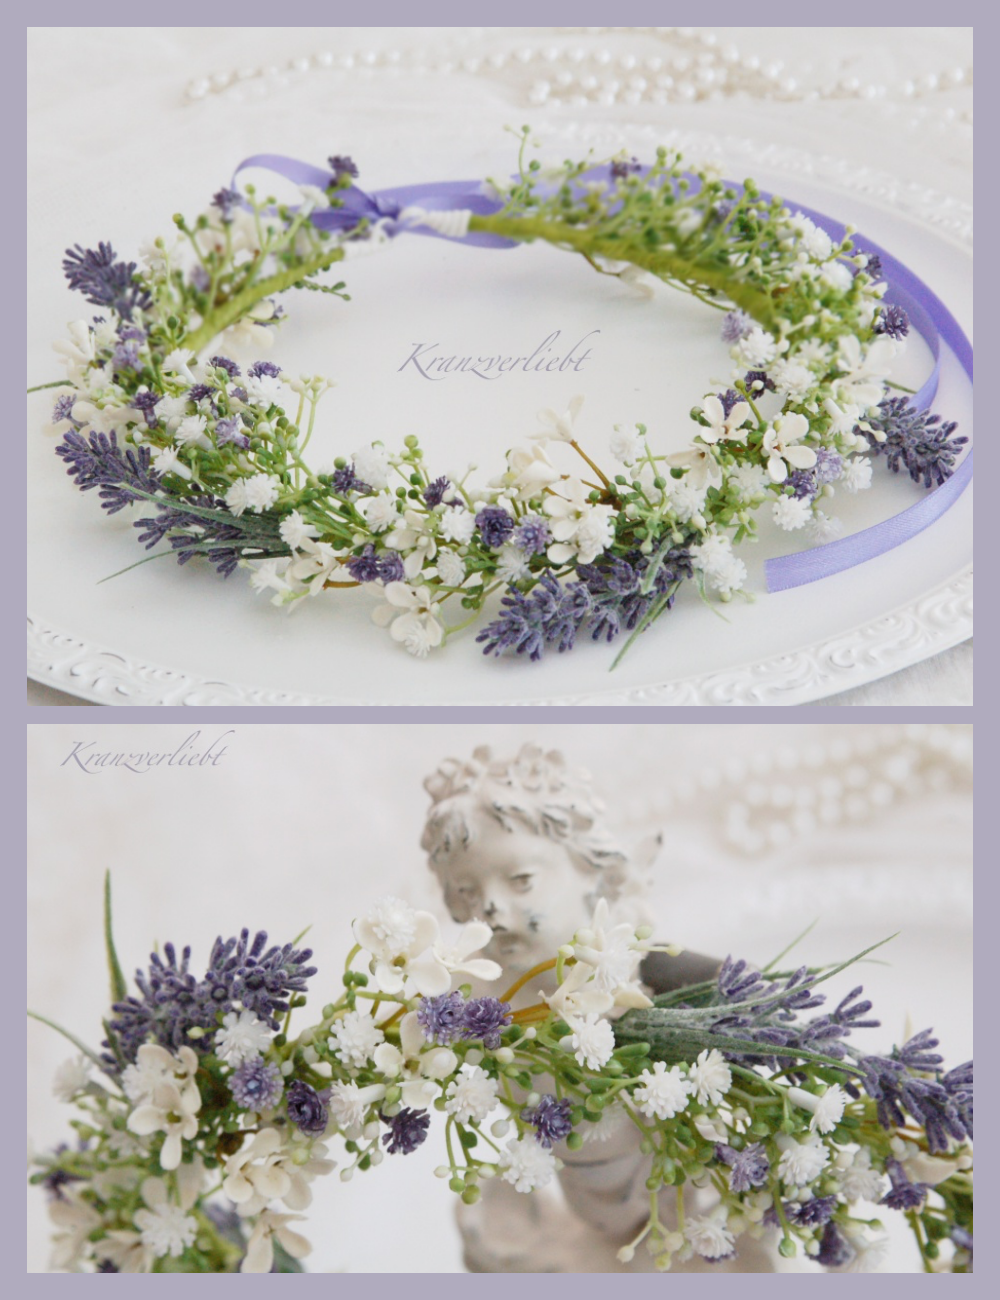 Hair wreath with lavender flower wreath for the bride No. 27 Violet hair jewelry-beautiful wreath in love #27piecehairstyles